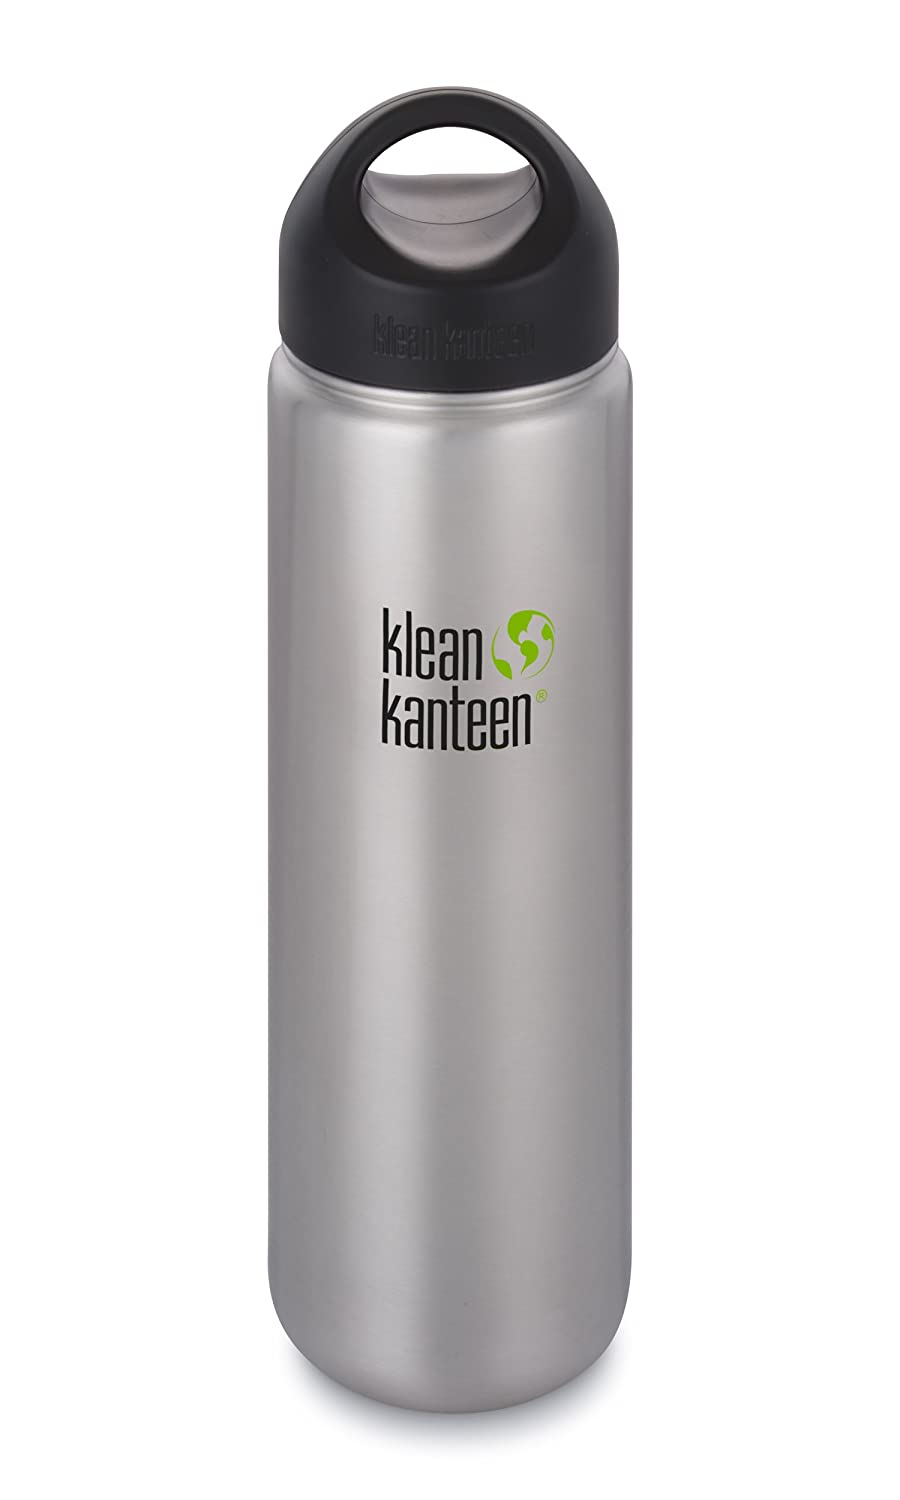 Klean Kanteen Wide Mouth Stainless Steel Water Bottle Single Wall with Leak Proof Stainless Steel Interior Cap (New 2018)